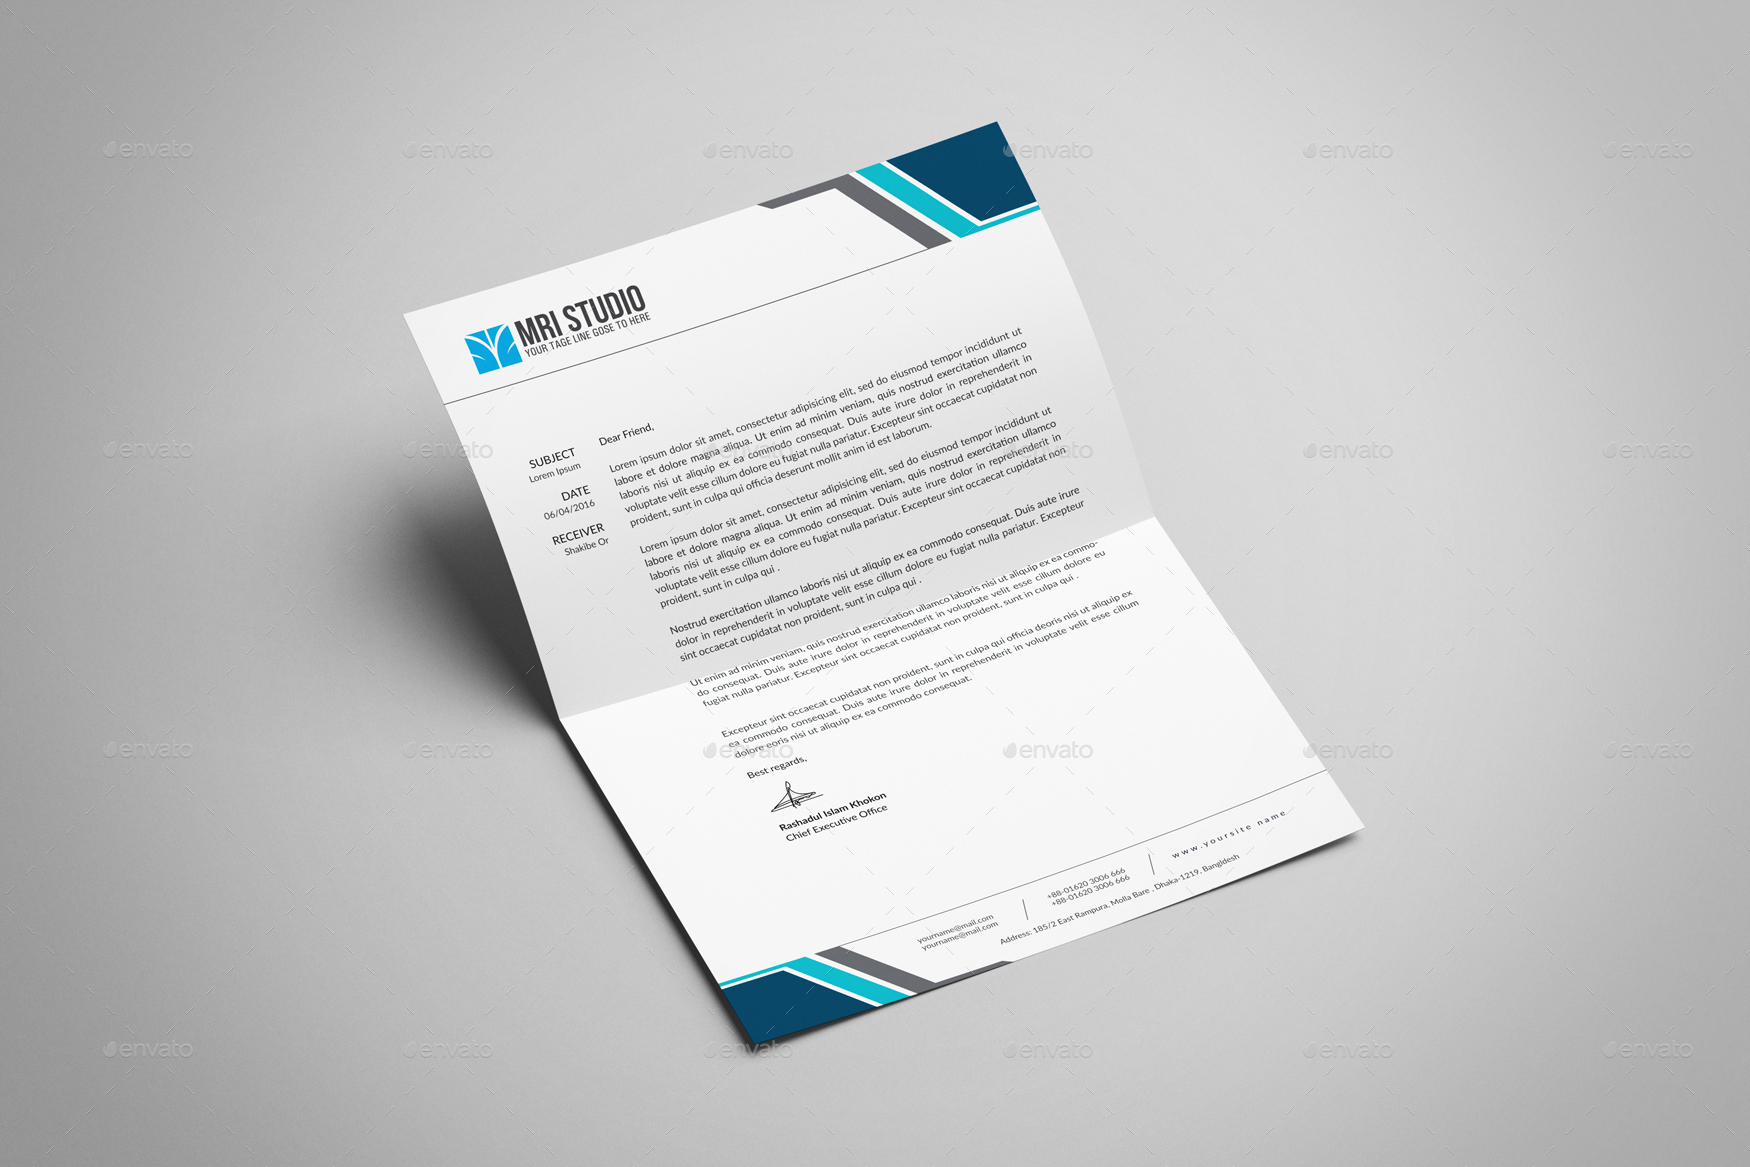 Letterhead design template by mrikhokon graphicriver letterhead design template stationery print templates preview image set1g spiritdancerdesigns Choice Image